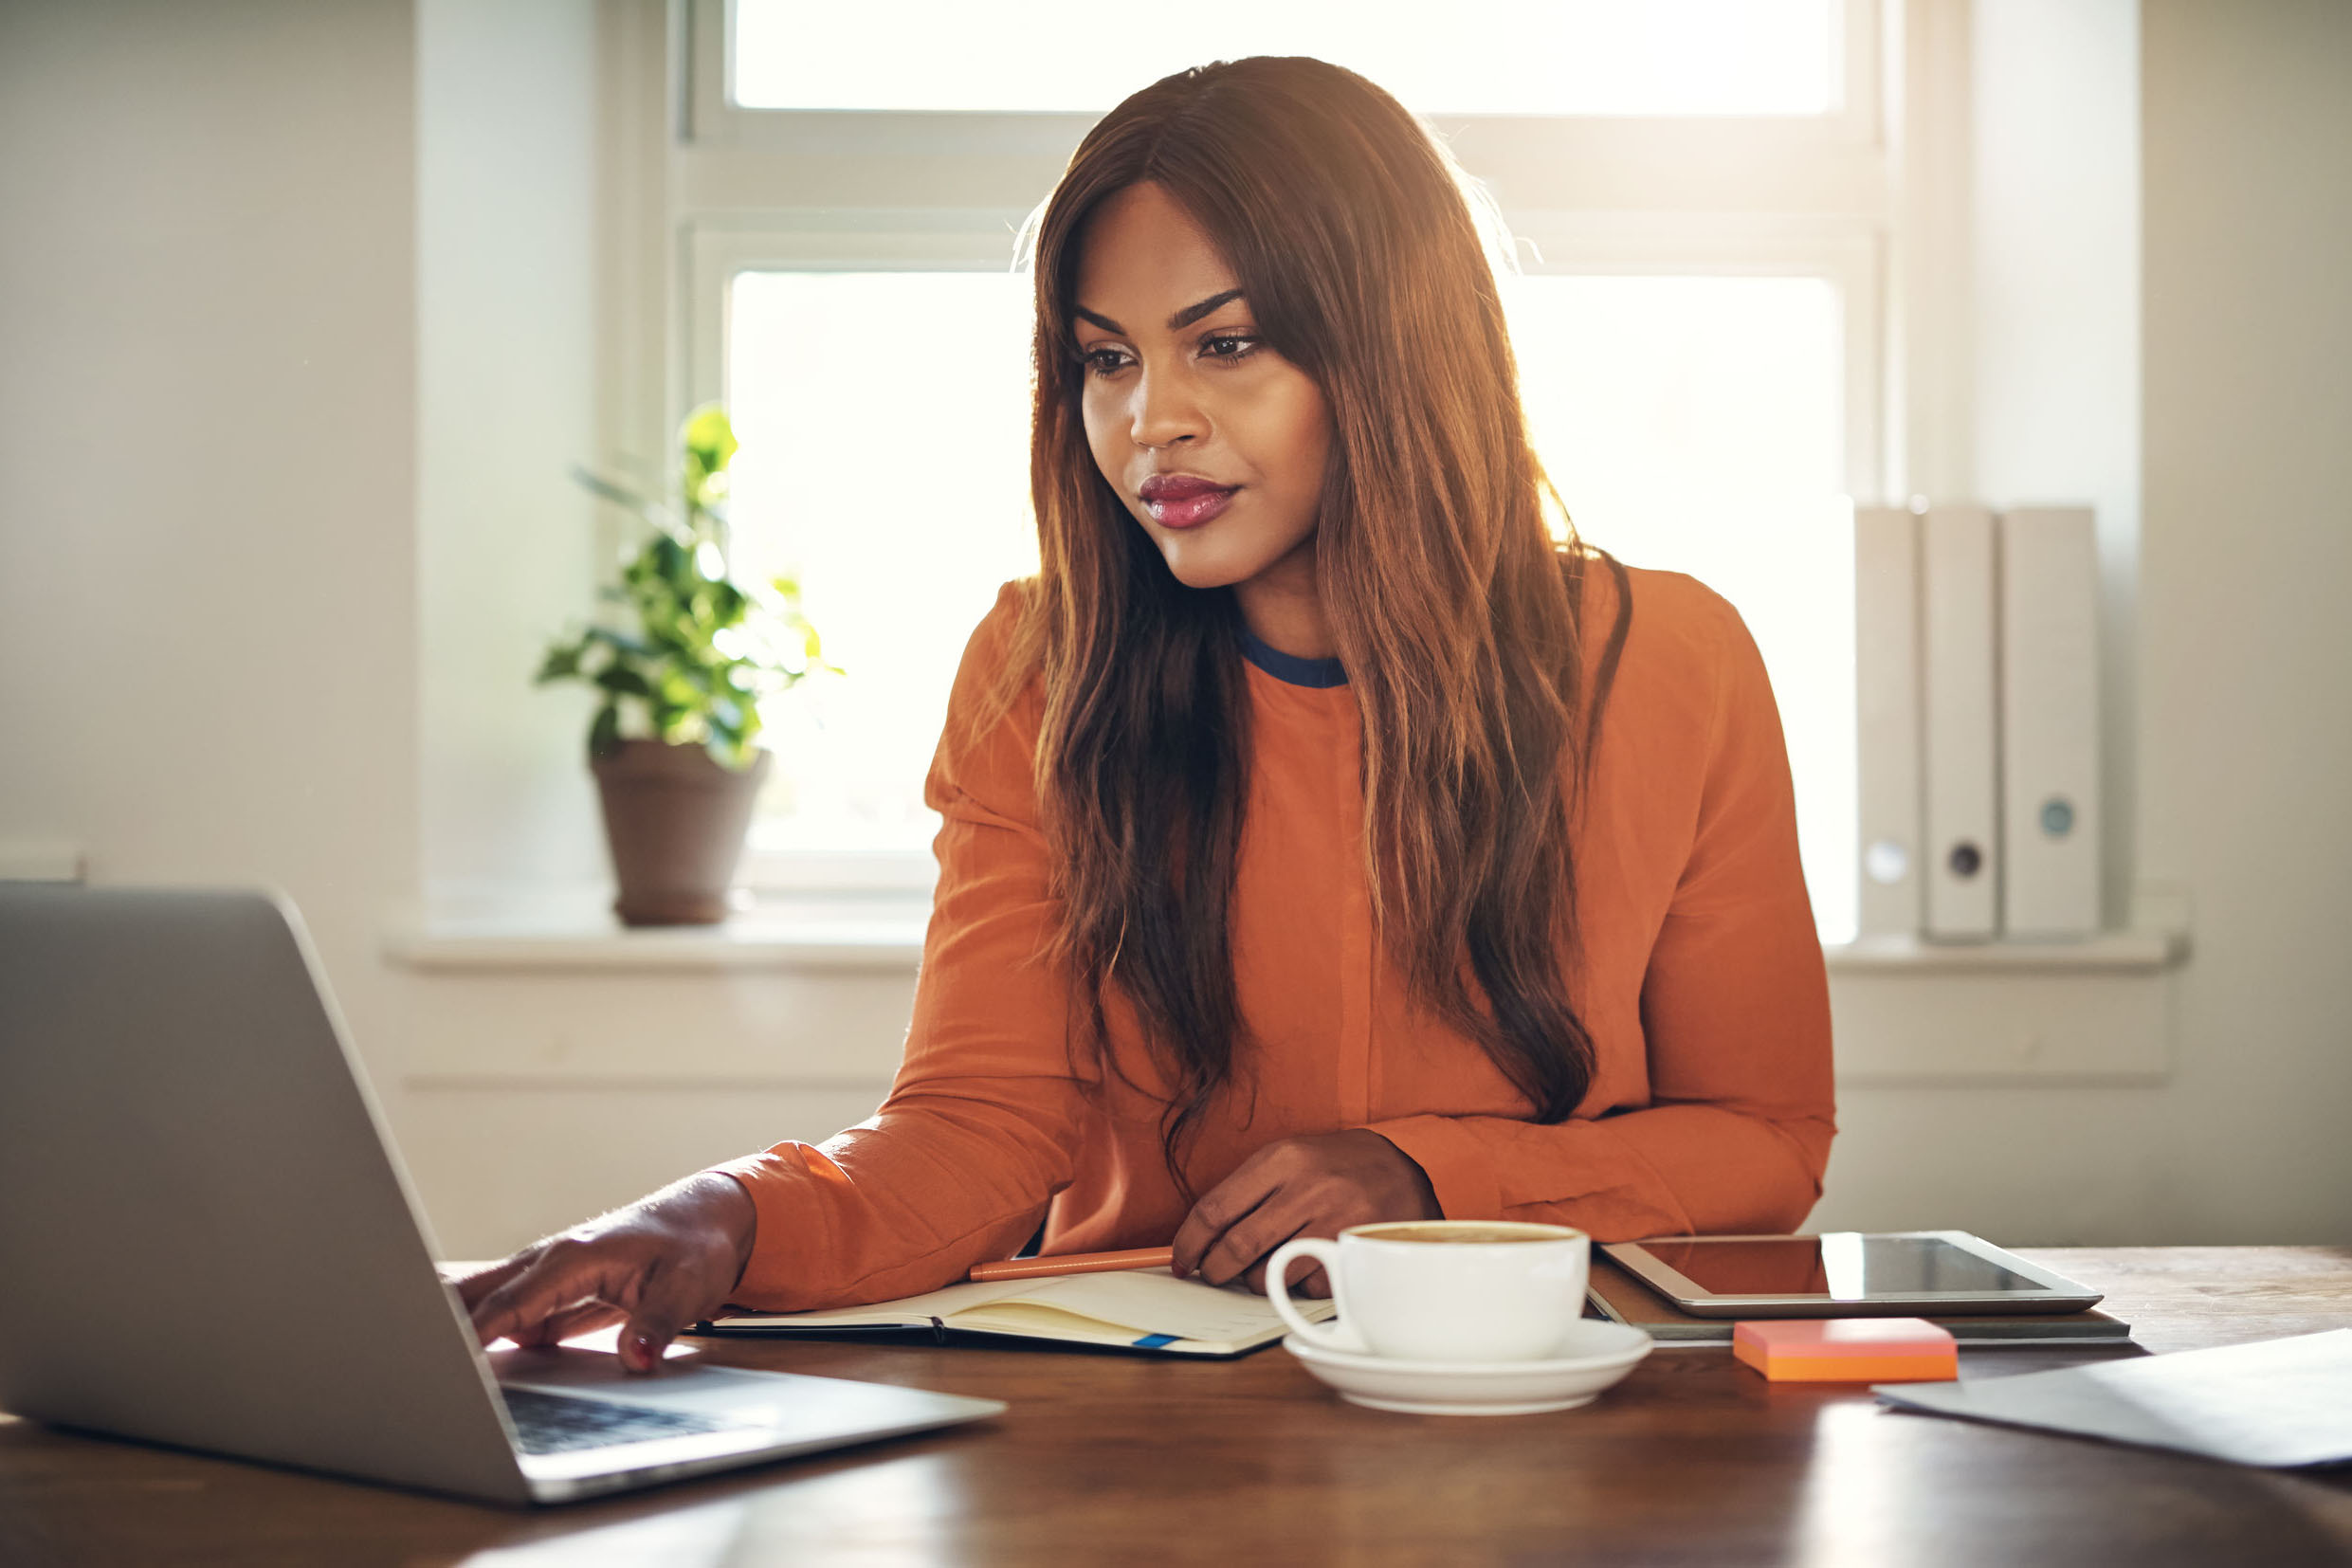 Woman on her laptop at home with a cup of coffee.